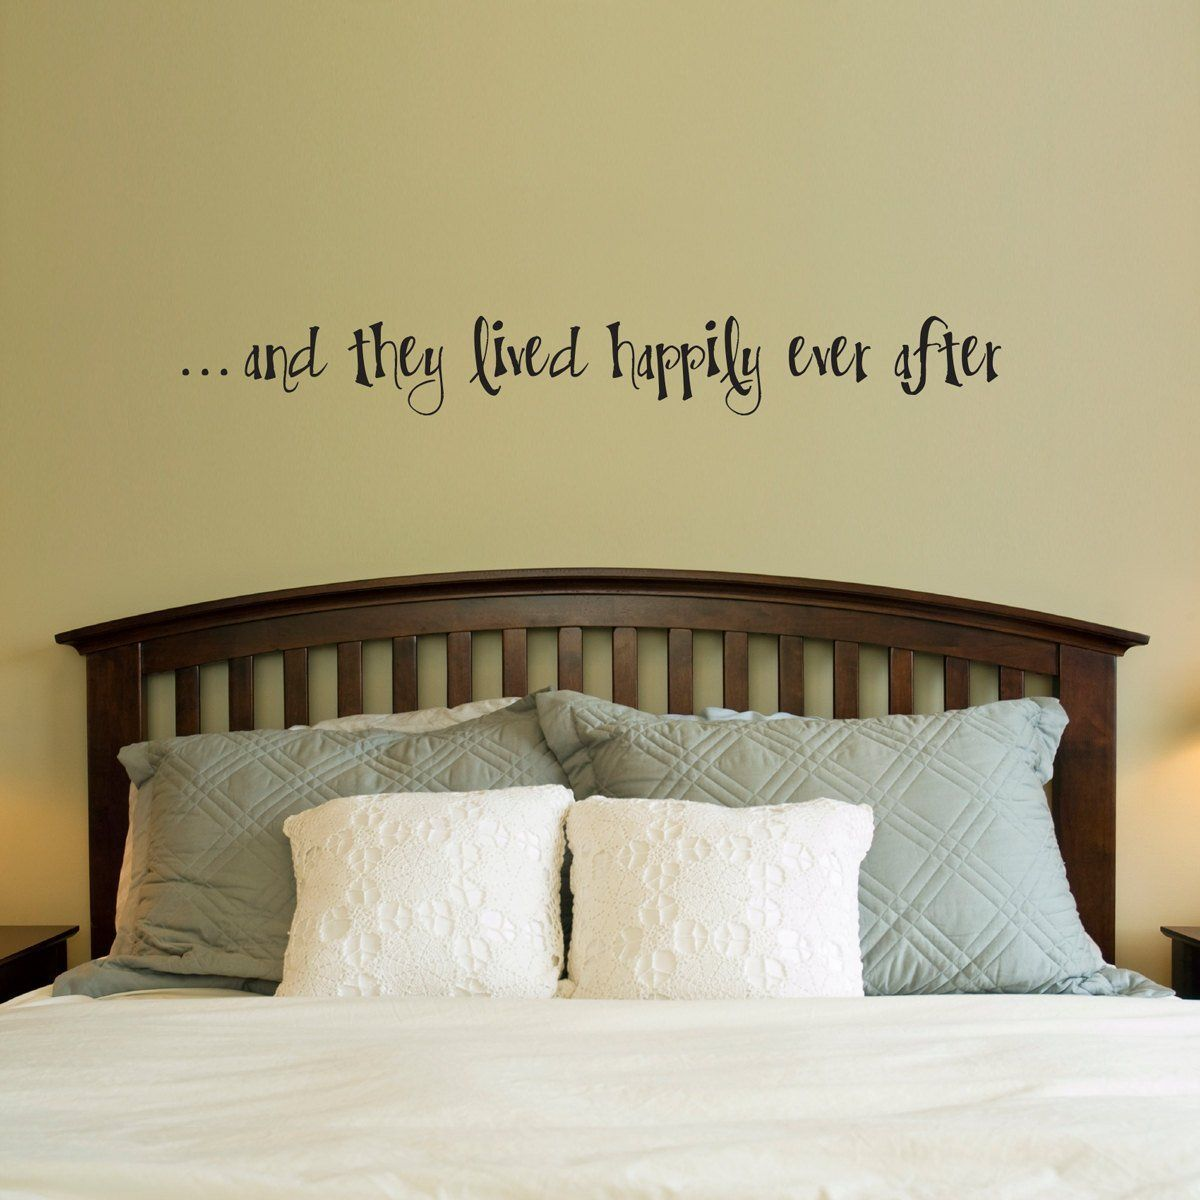 Happily Ever After Wall Decal - Couple Bedroom Decor - Decal Quote ...